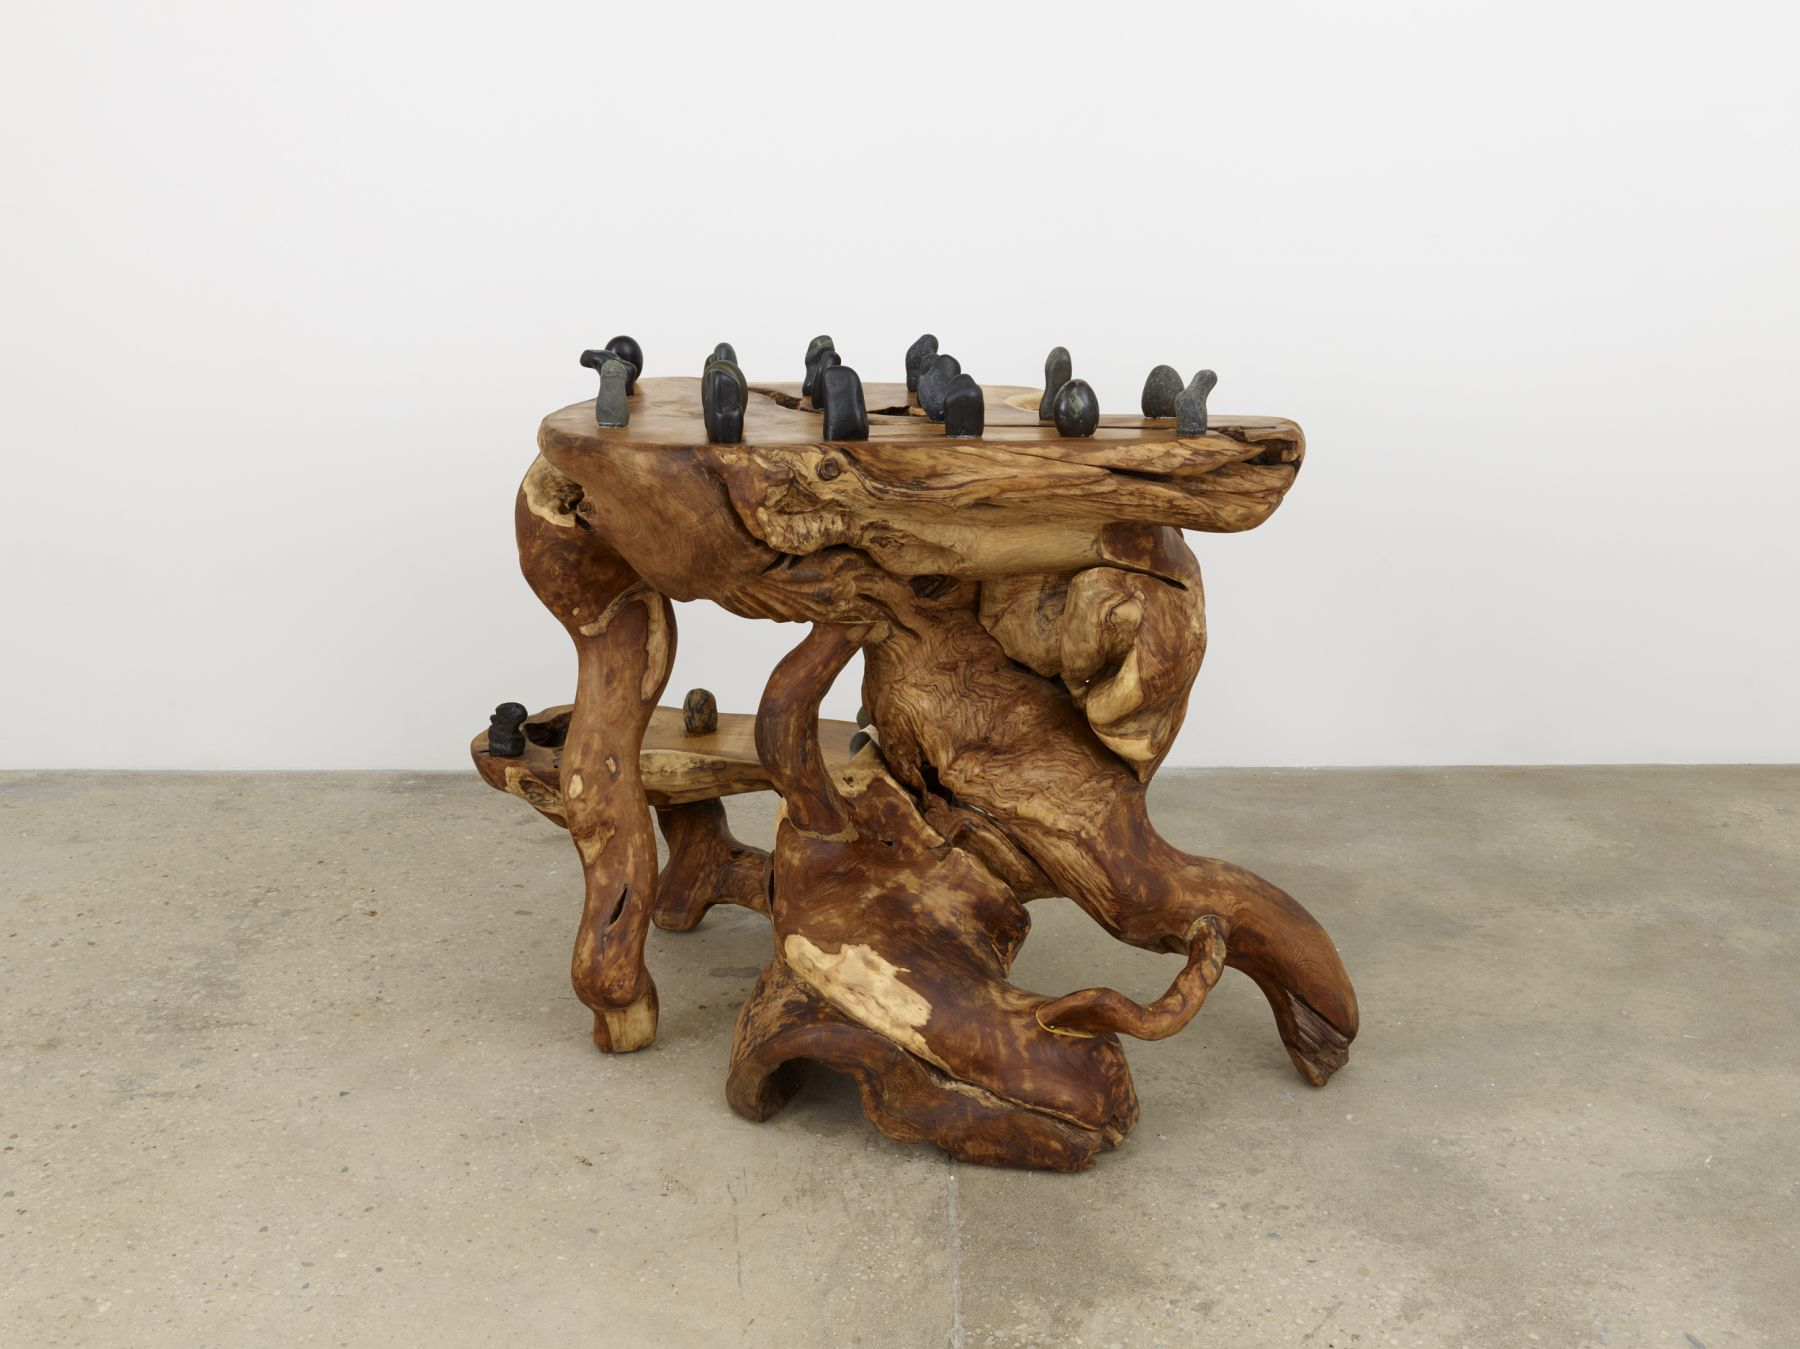 Haegue Yang, Rooted Stones on Parallel Dimensions, 2016